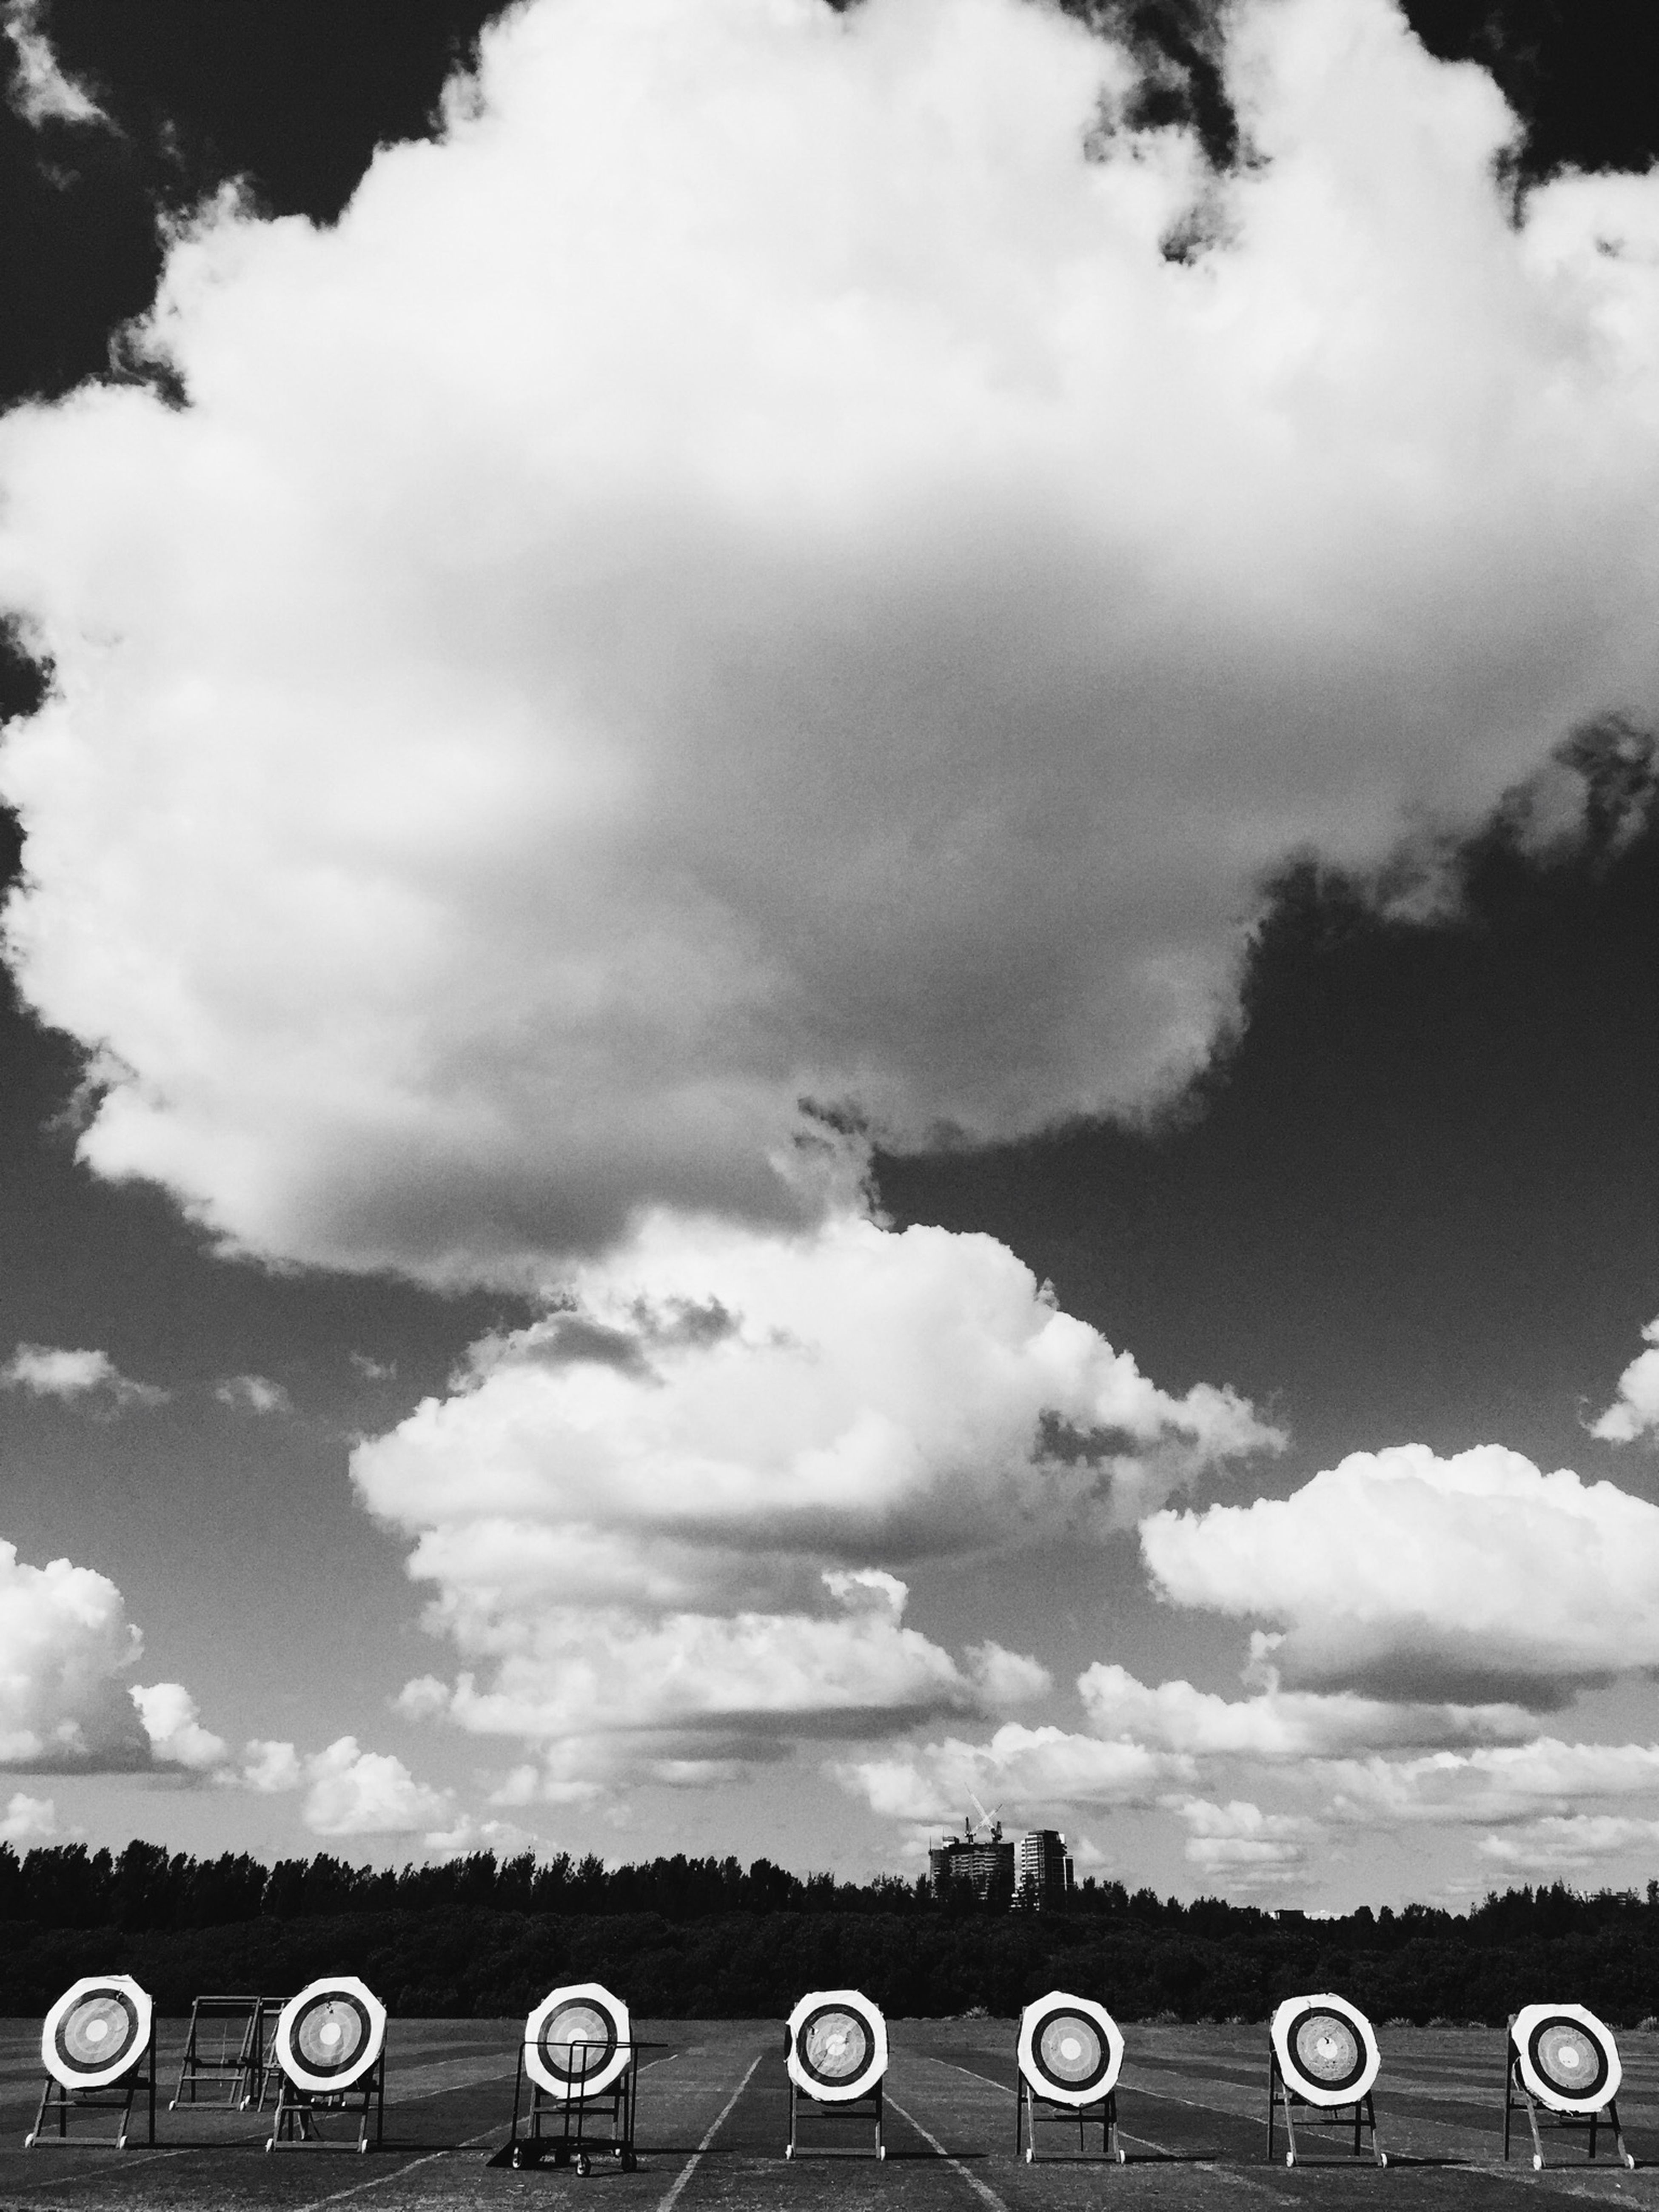 Clouds over the archery range.